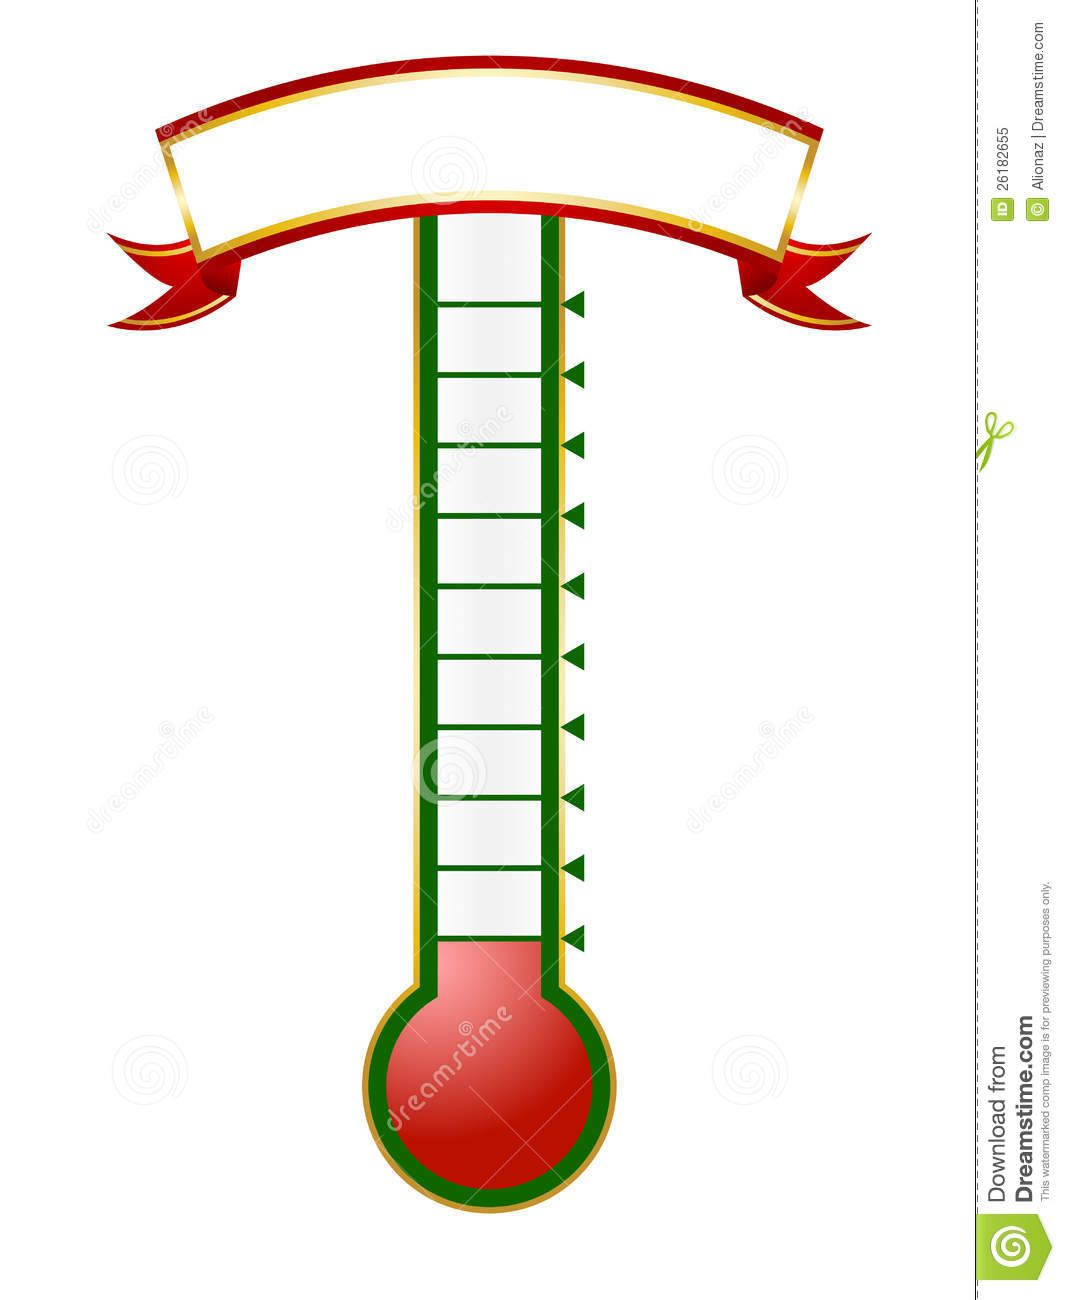 thermometer template.